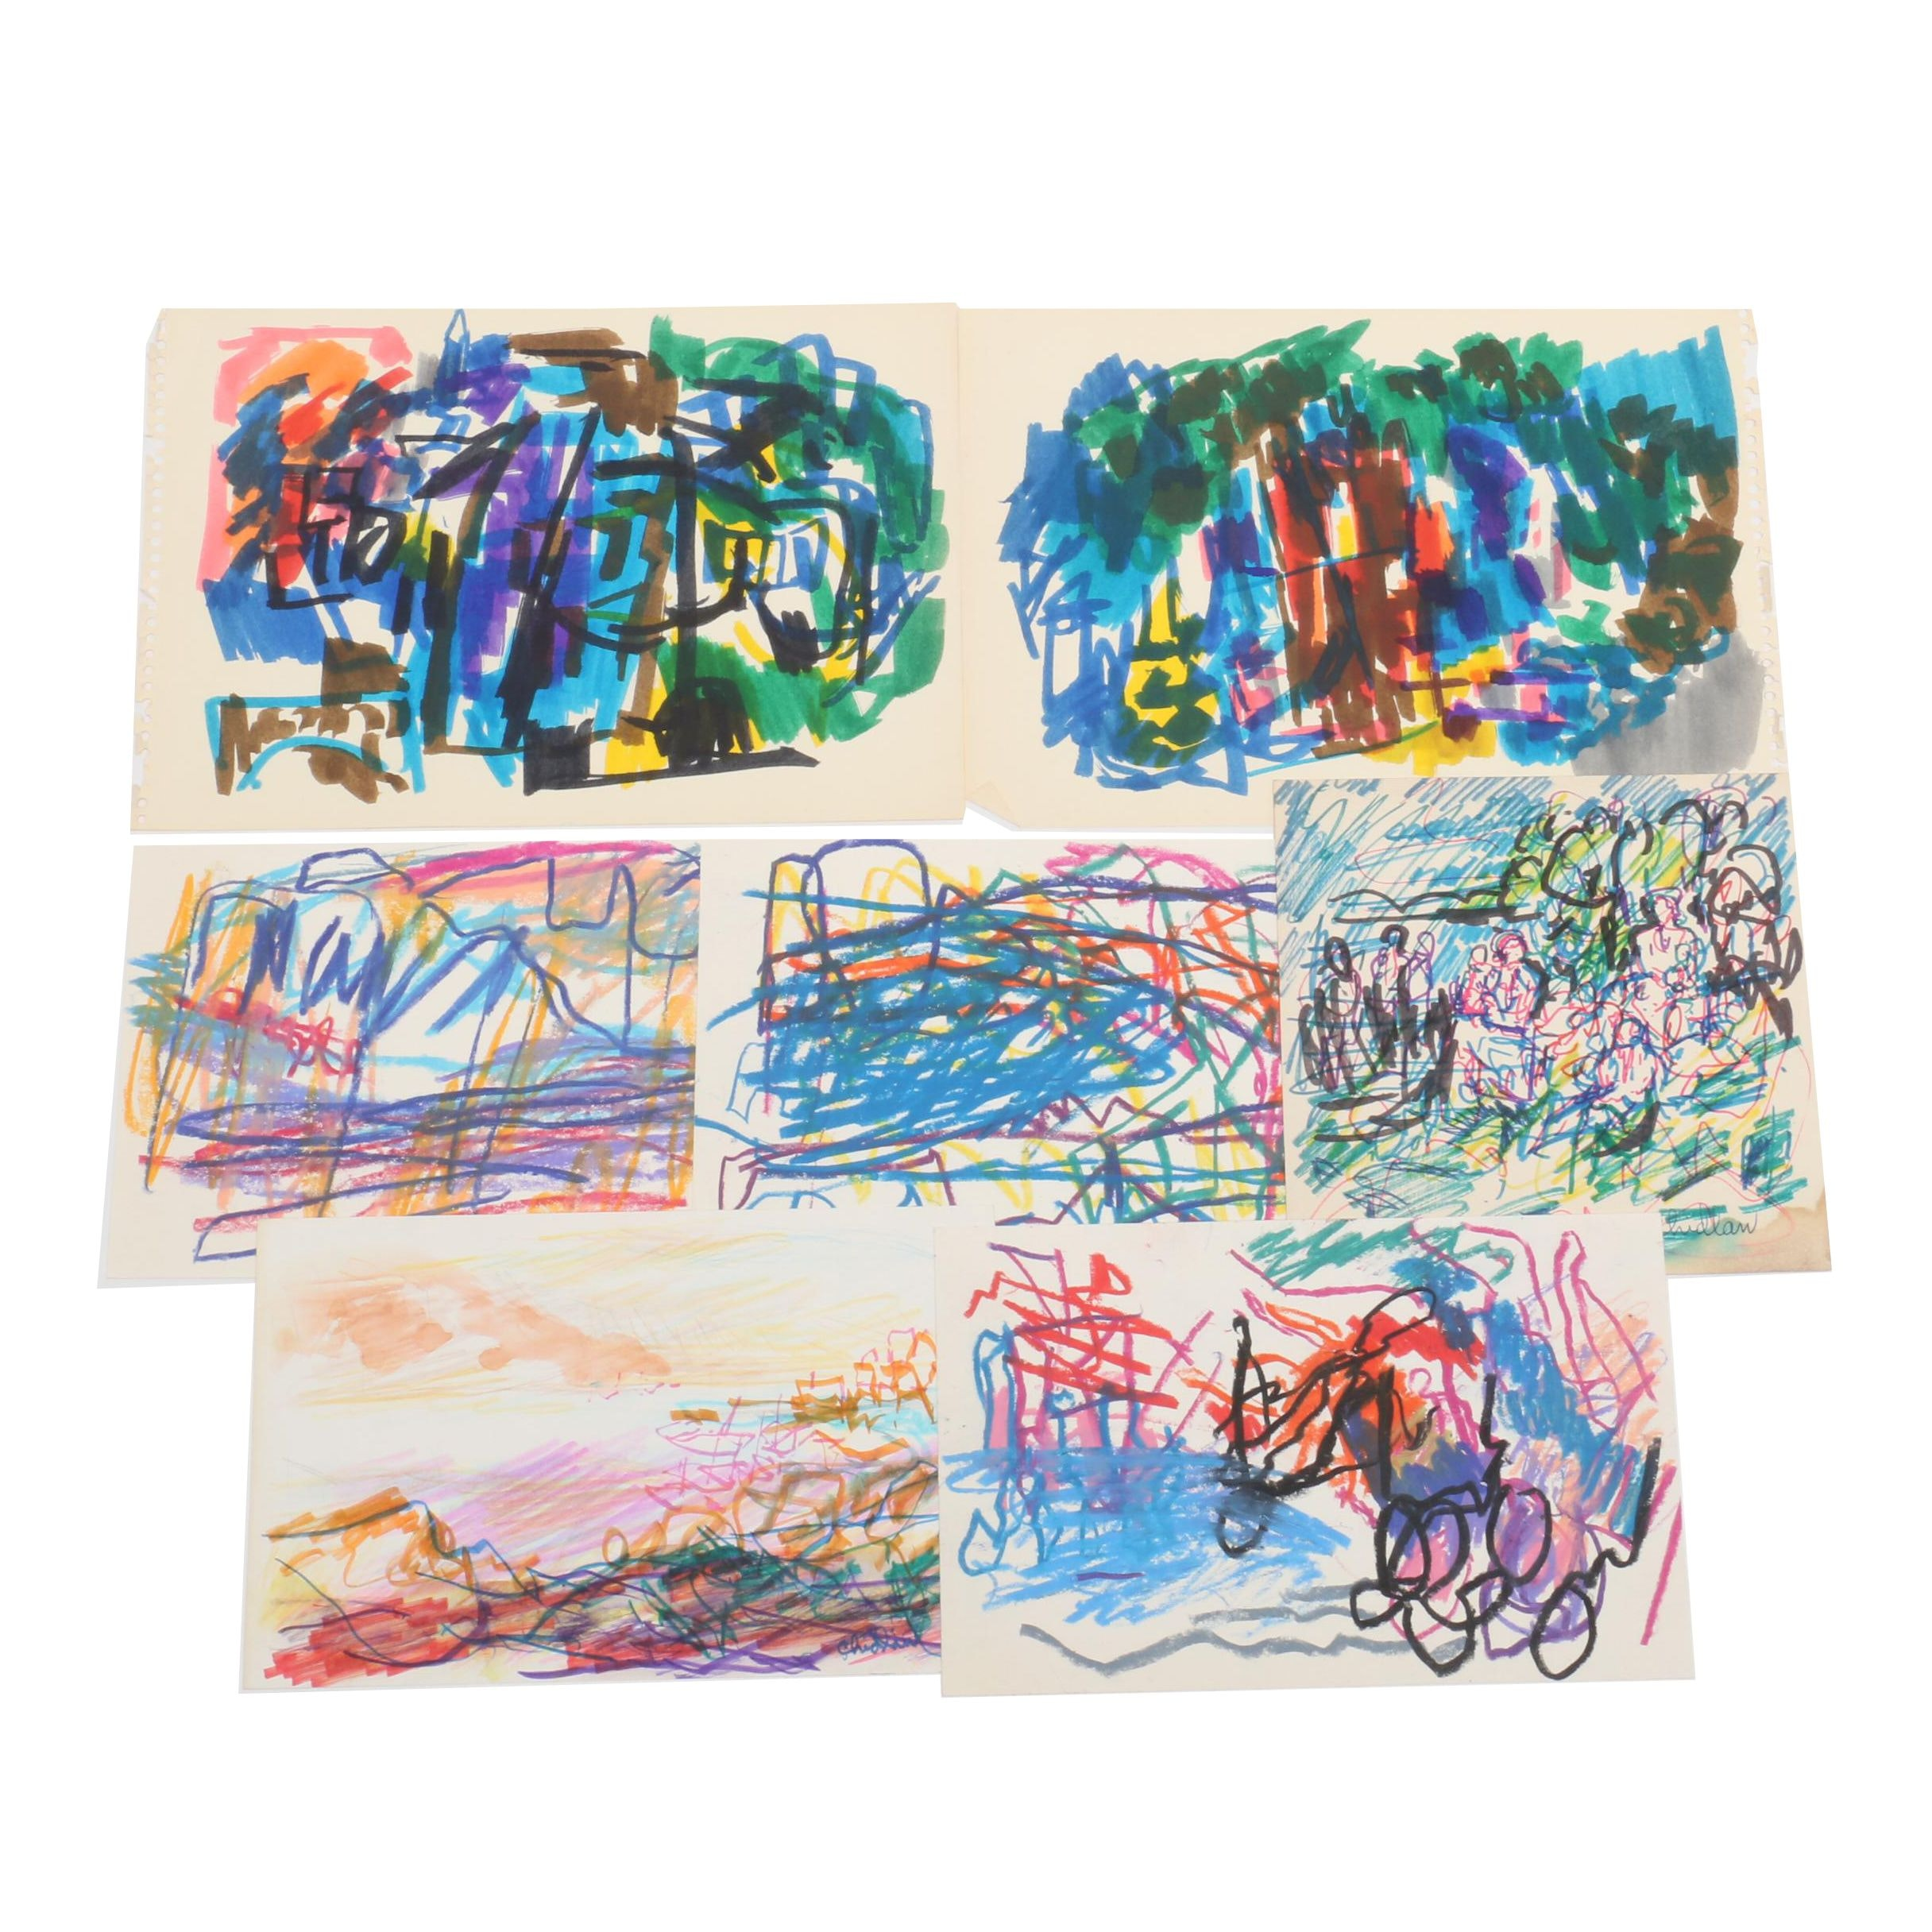 Paul Chidlaw Abstract Expressionist Drawings